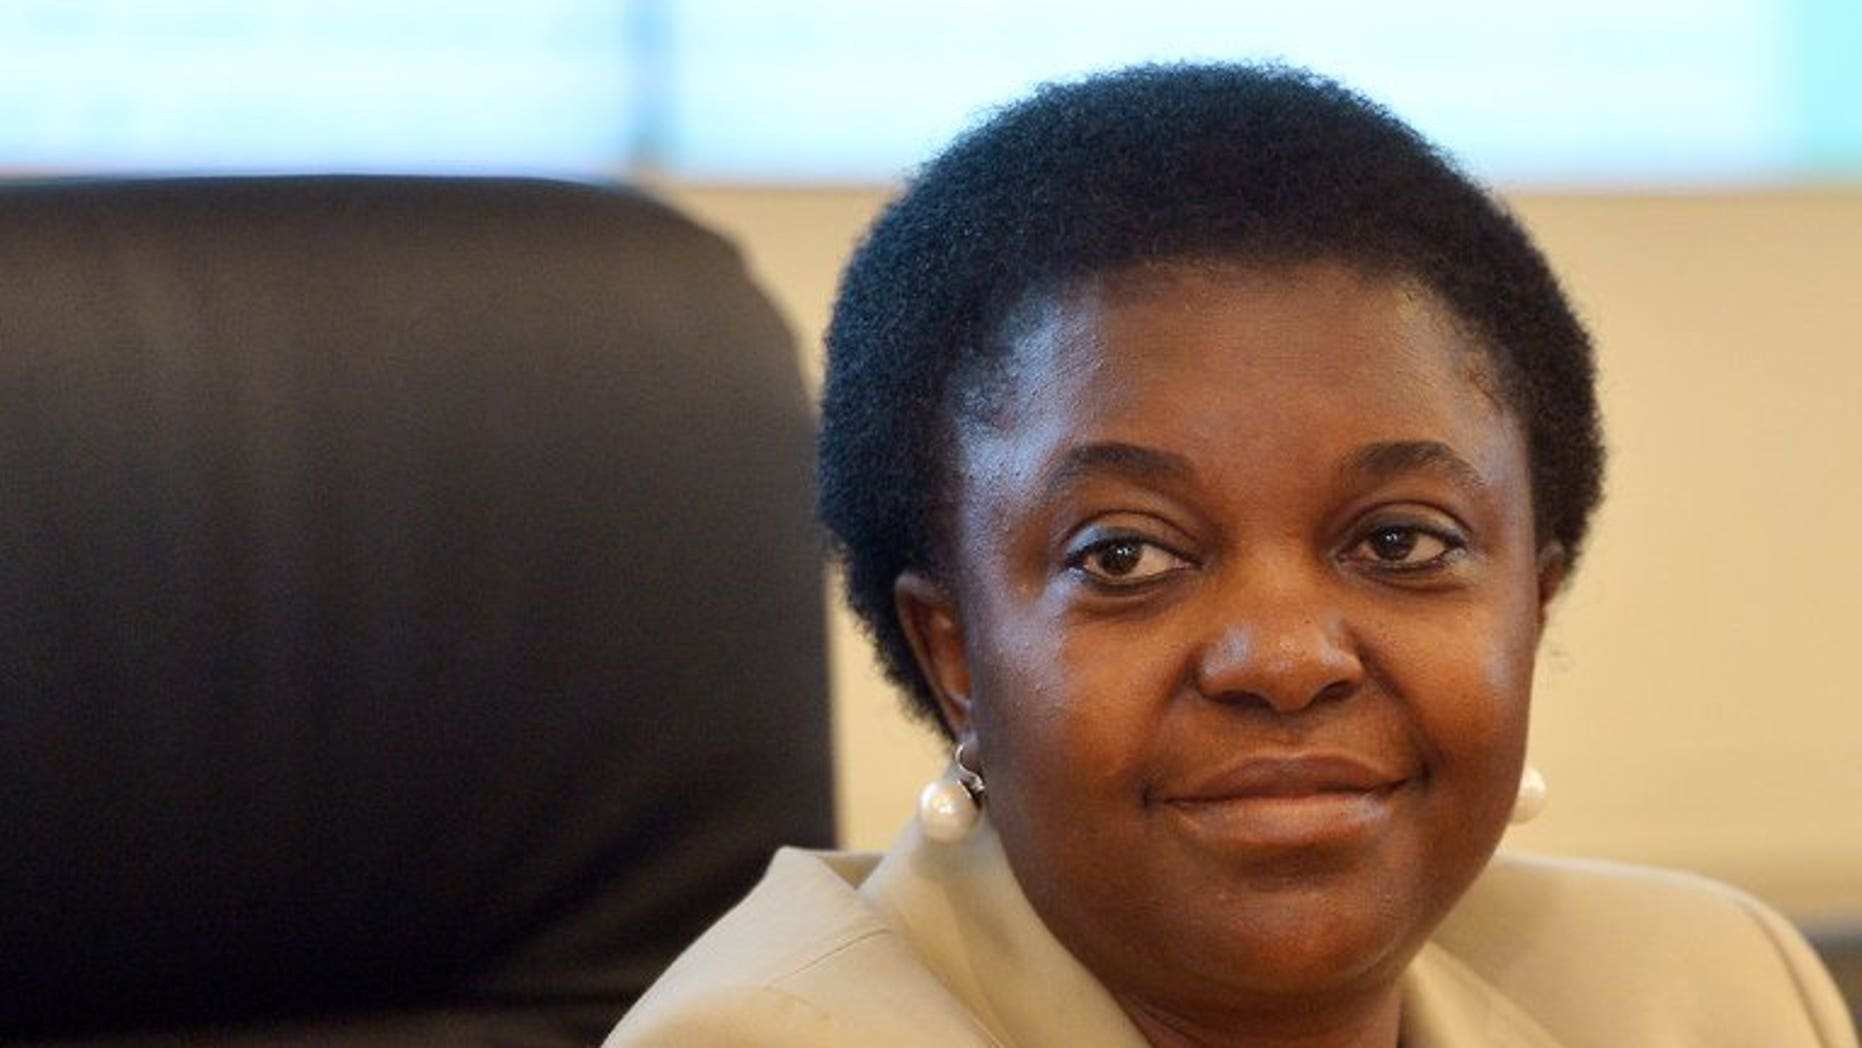 The latest racist attack against Italy's first black minister Cecile Kyenge, pictured July 16, 2013, in which a banana was hurled at her during a rally, sparked outrage across the political spectrum.